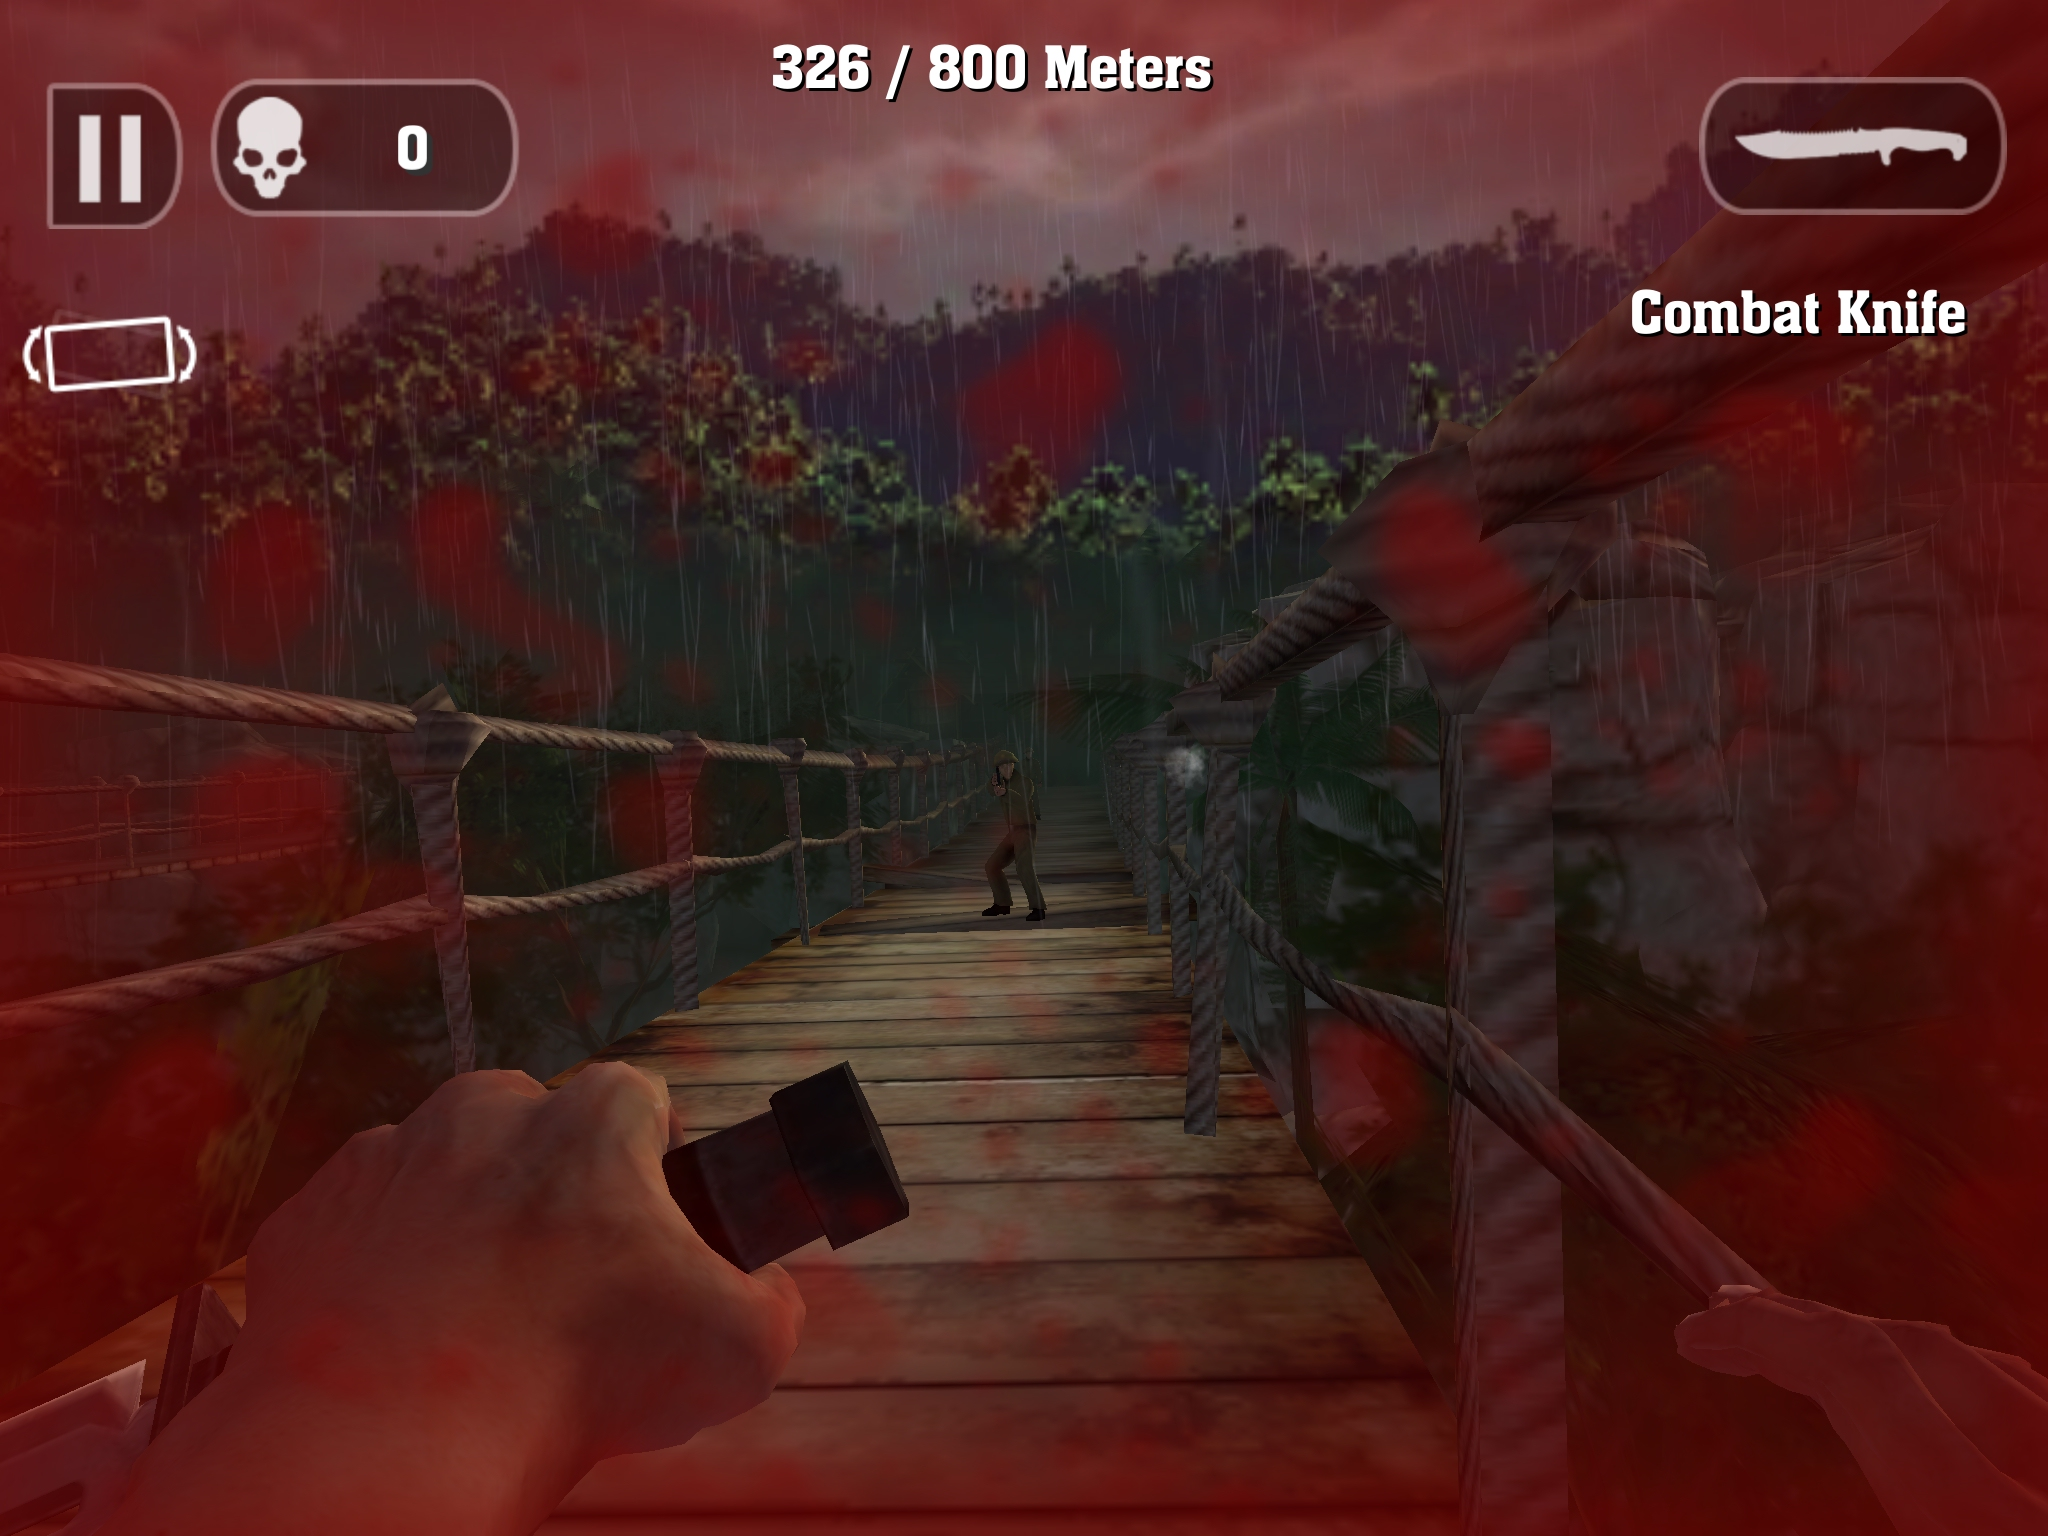 Rambo: The Mobile Game - I came here to rescue you from him